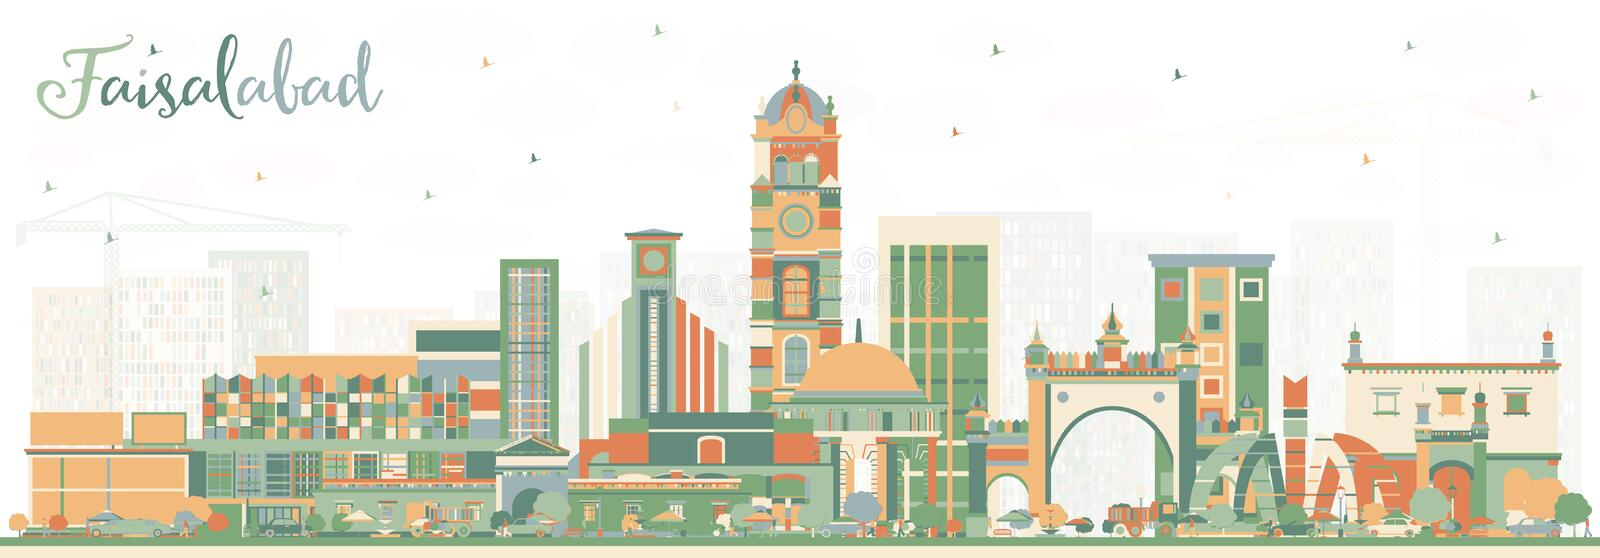 Faisalabad Pakistan City Skyline with Color Buildings. Vector Illustration. Business Travel and Tourism Concept with Modern Architecture. Faisalabad Cityscape royalty free illustration